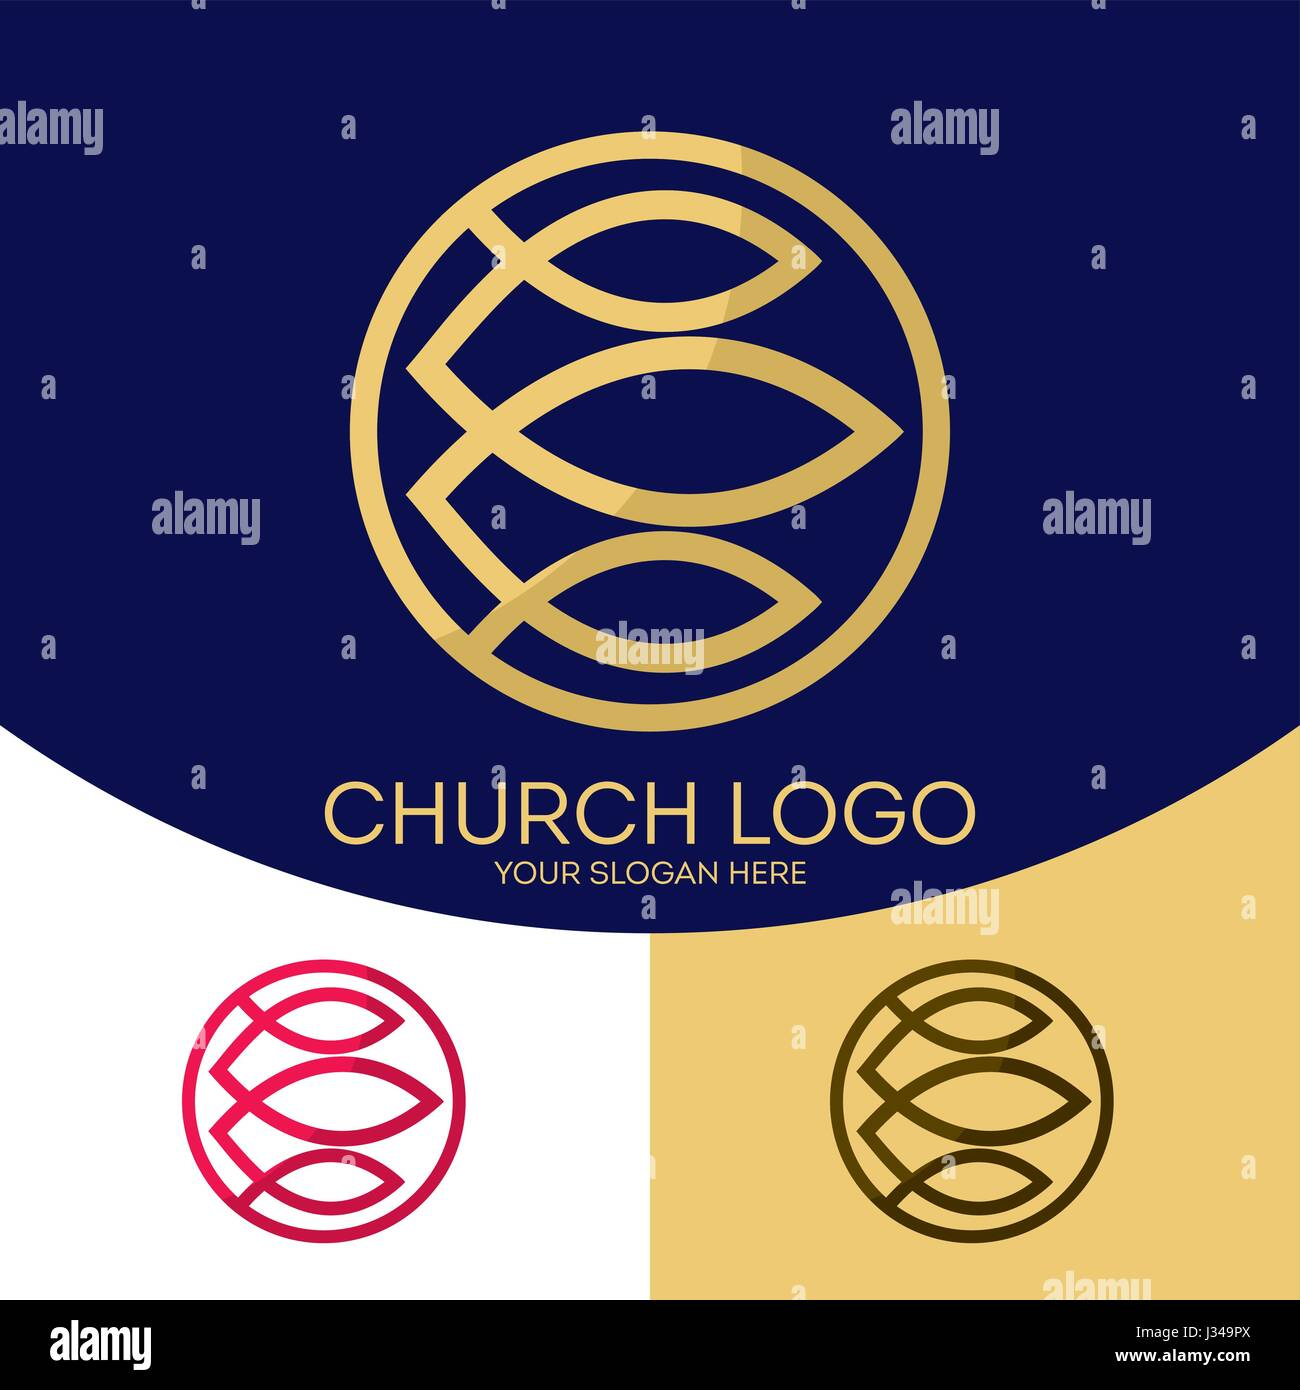 Church logo christian symbols fish a symbol of jesus christ christian symbols fish a symbol of jesus christ and those who believe in the father and son and holy spirit buycottarizona